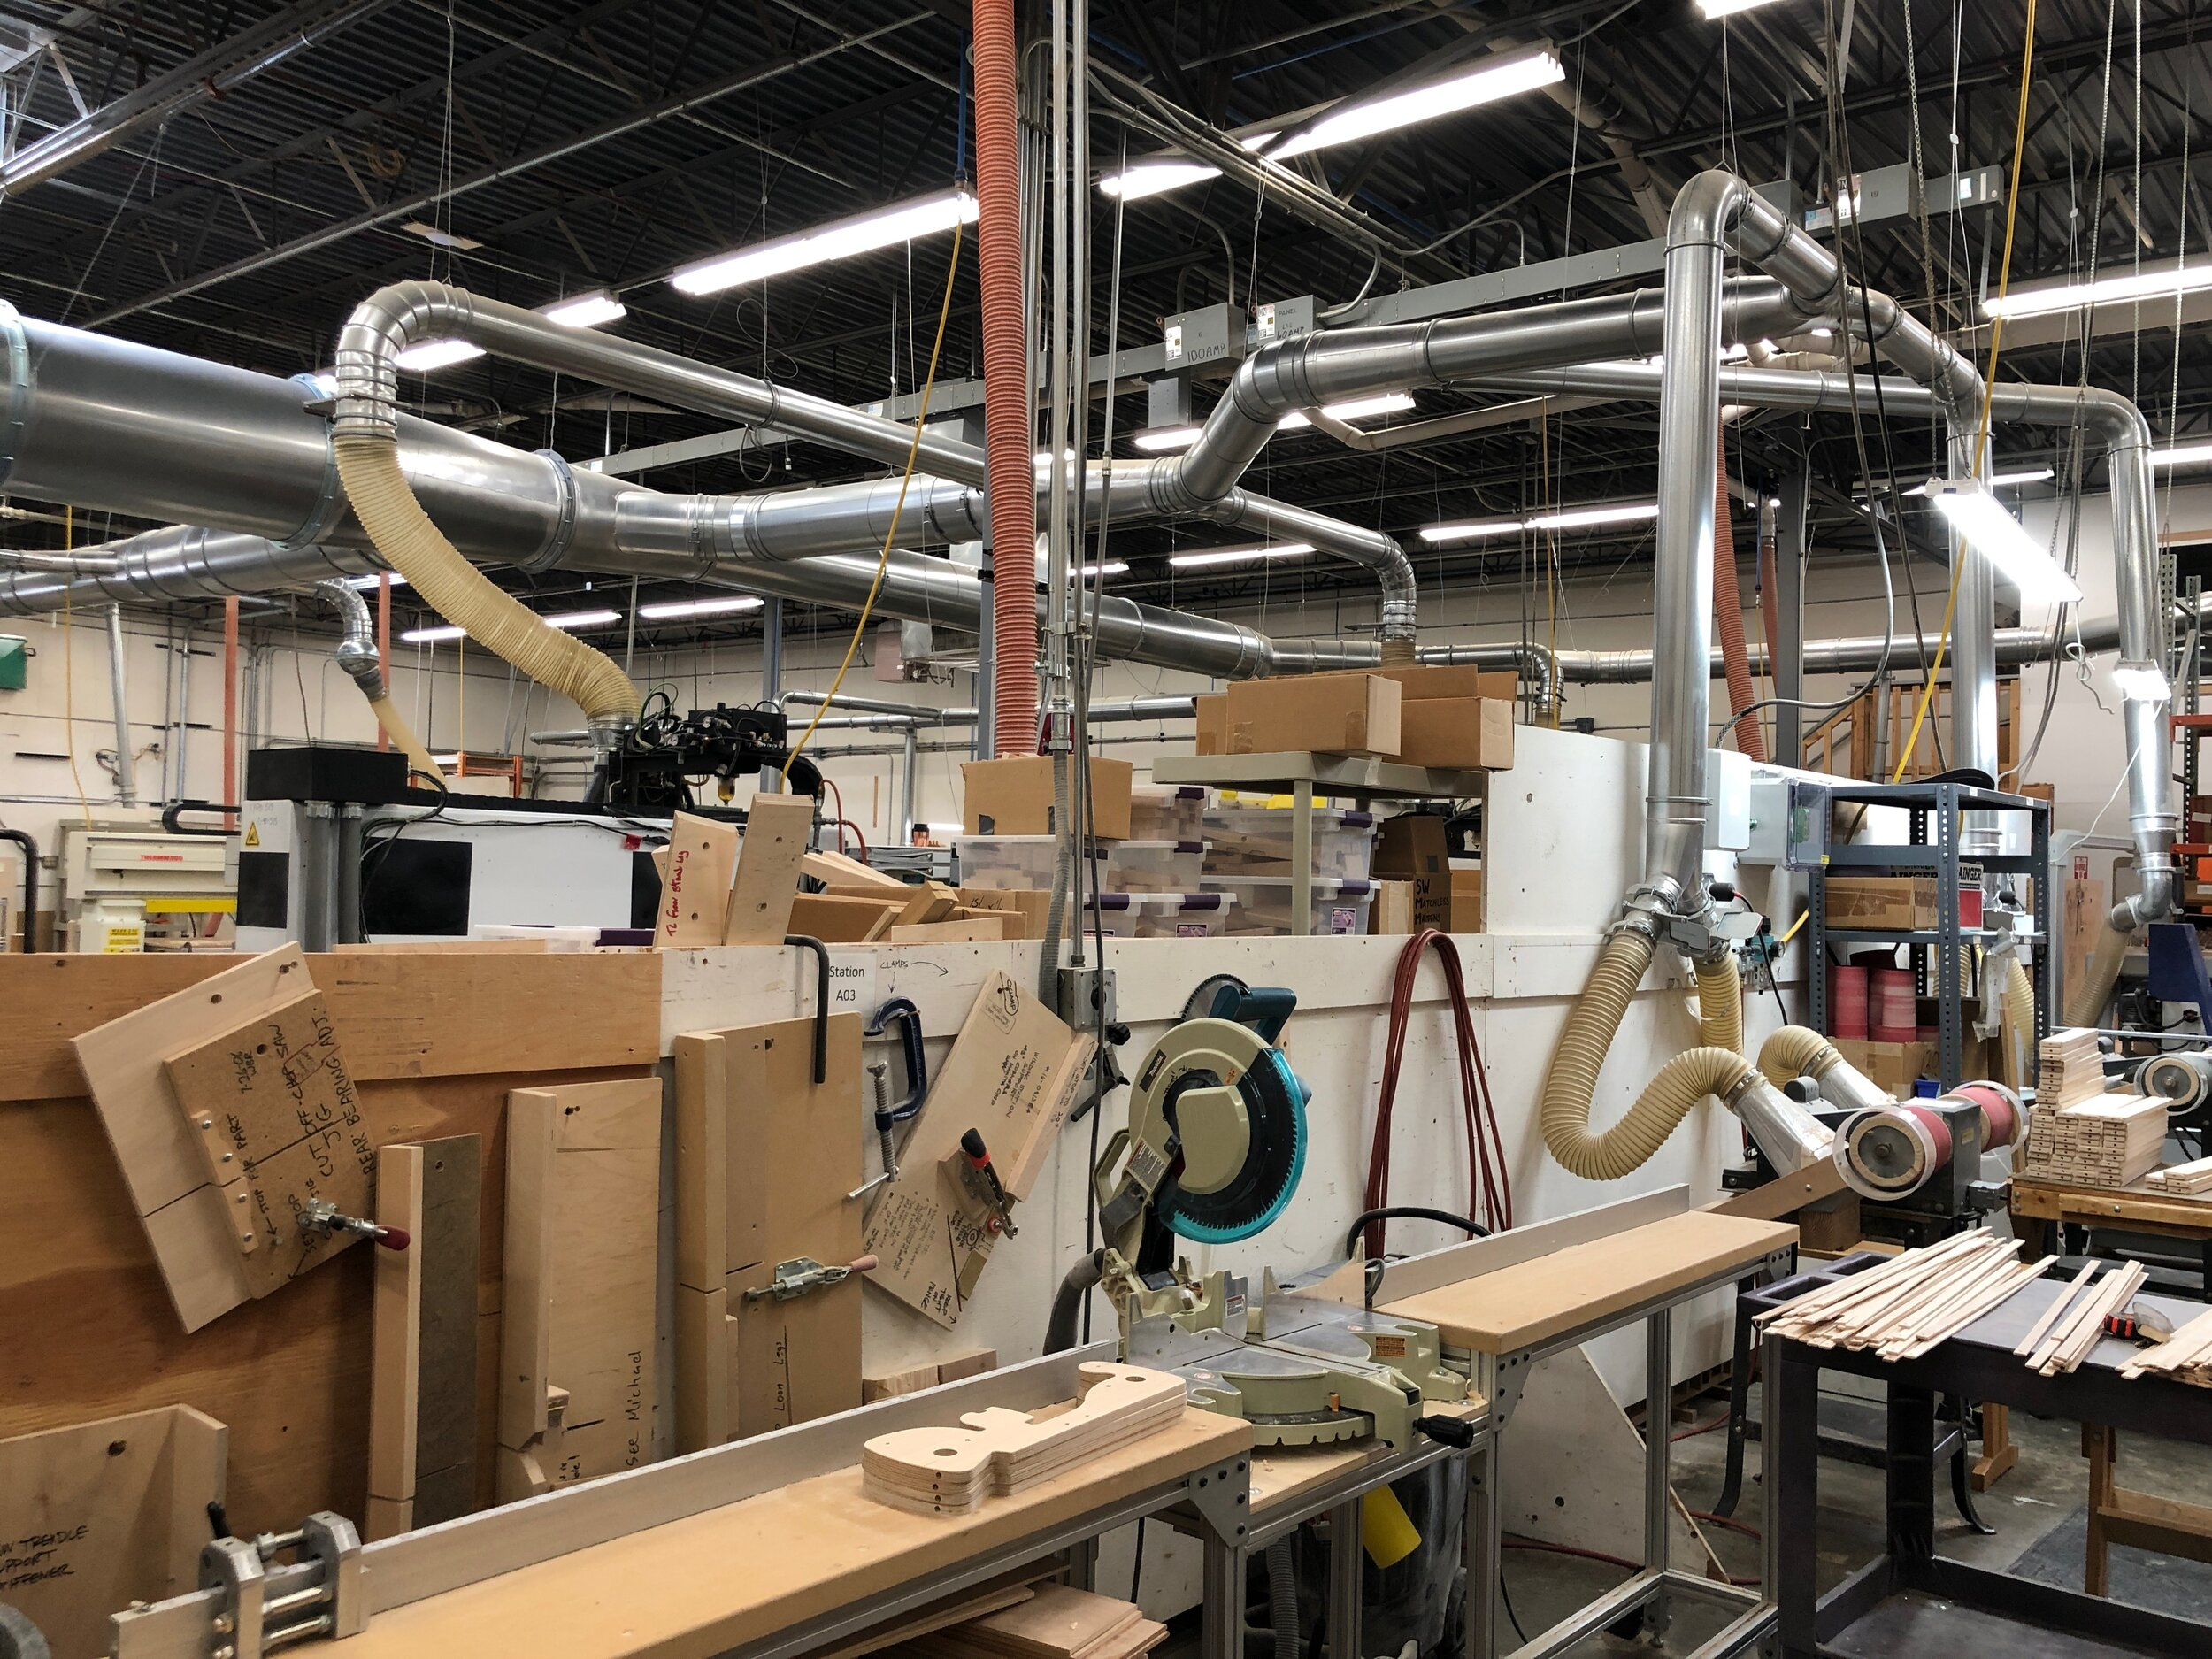 A view of the factory showing saws, sanders, and the vacuum ducts.  Celebrating Schacht's 50th Anniversary || withwool.com  #schacht50years